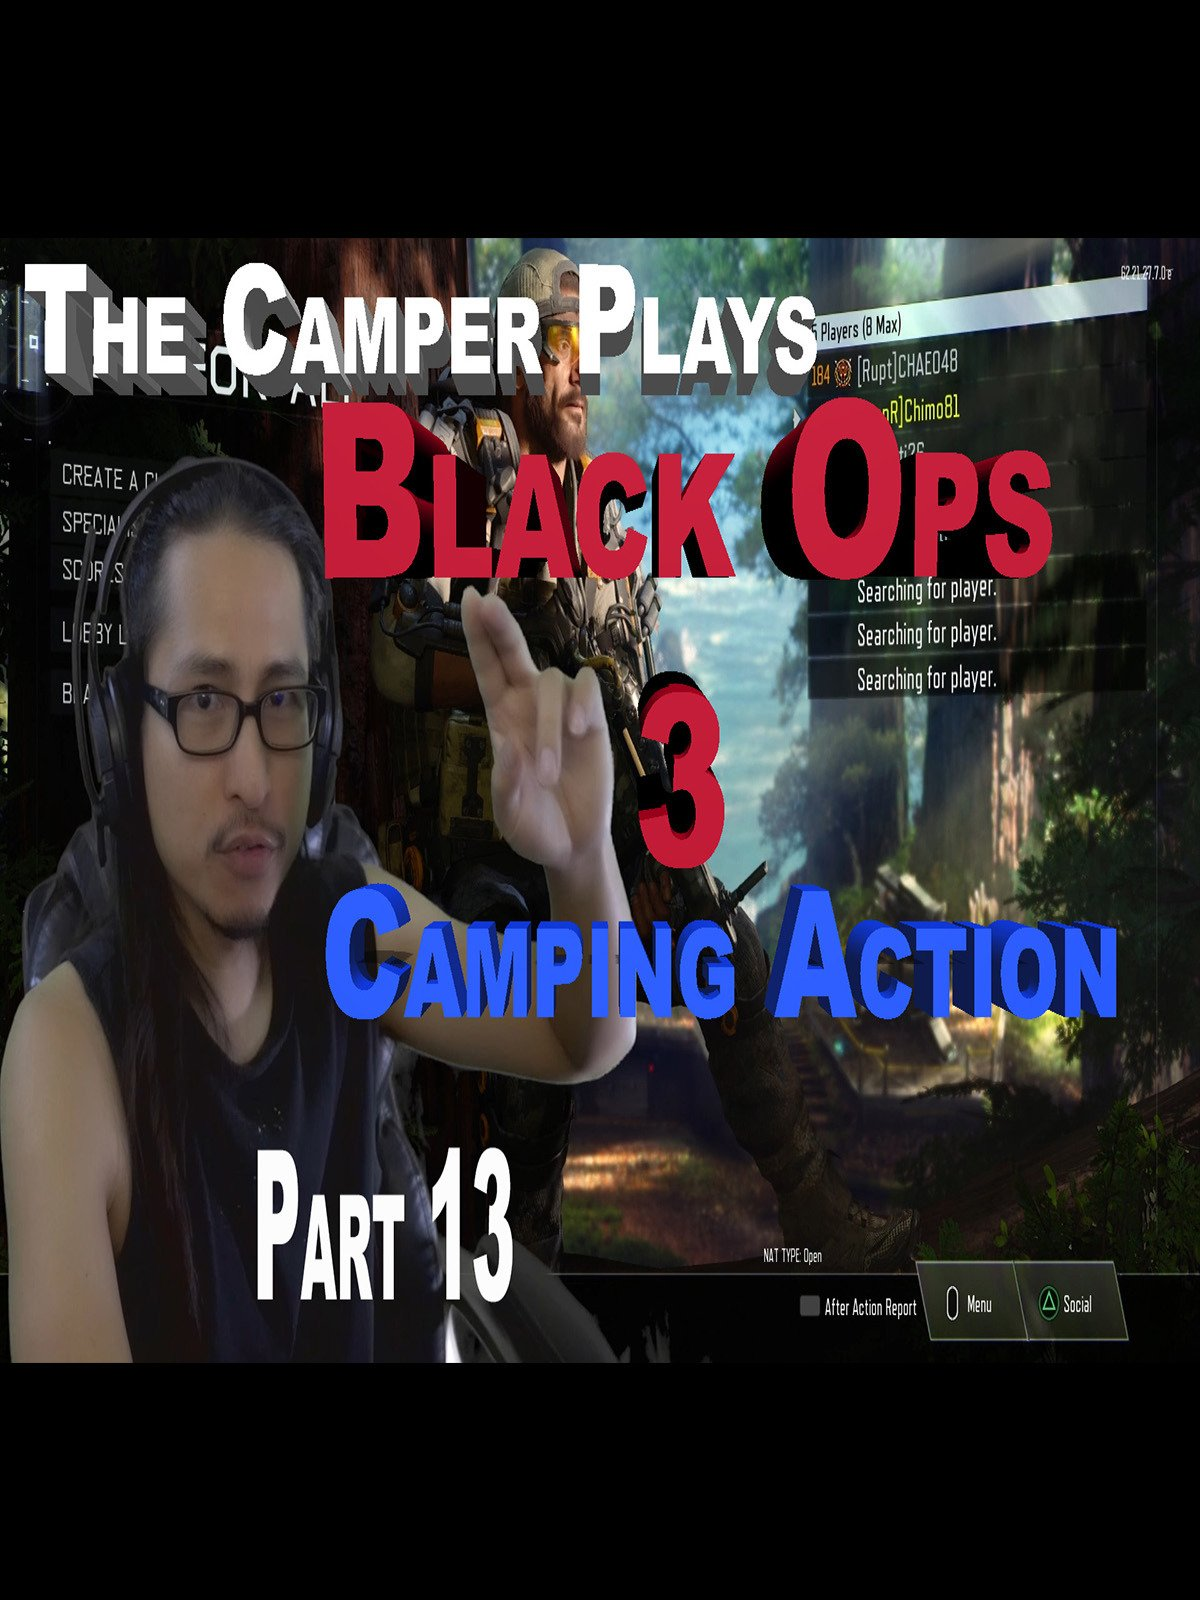 Call Of Duty Black Ops 3 - Free For All - Camping Action - Part 13 on Amazon Prime Video UK